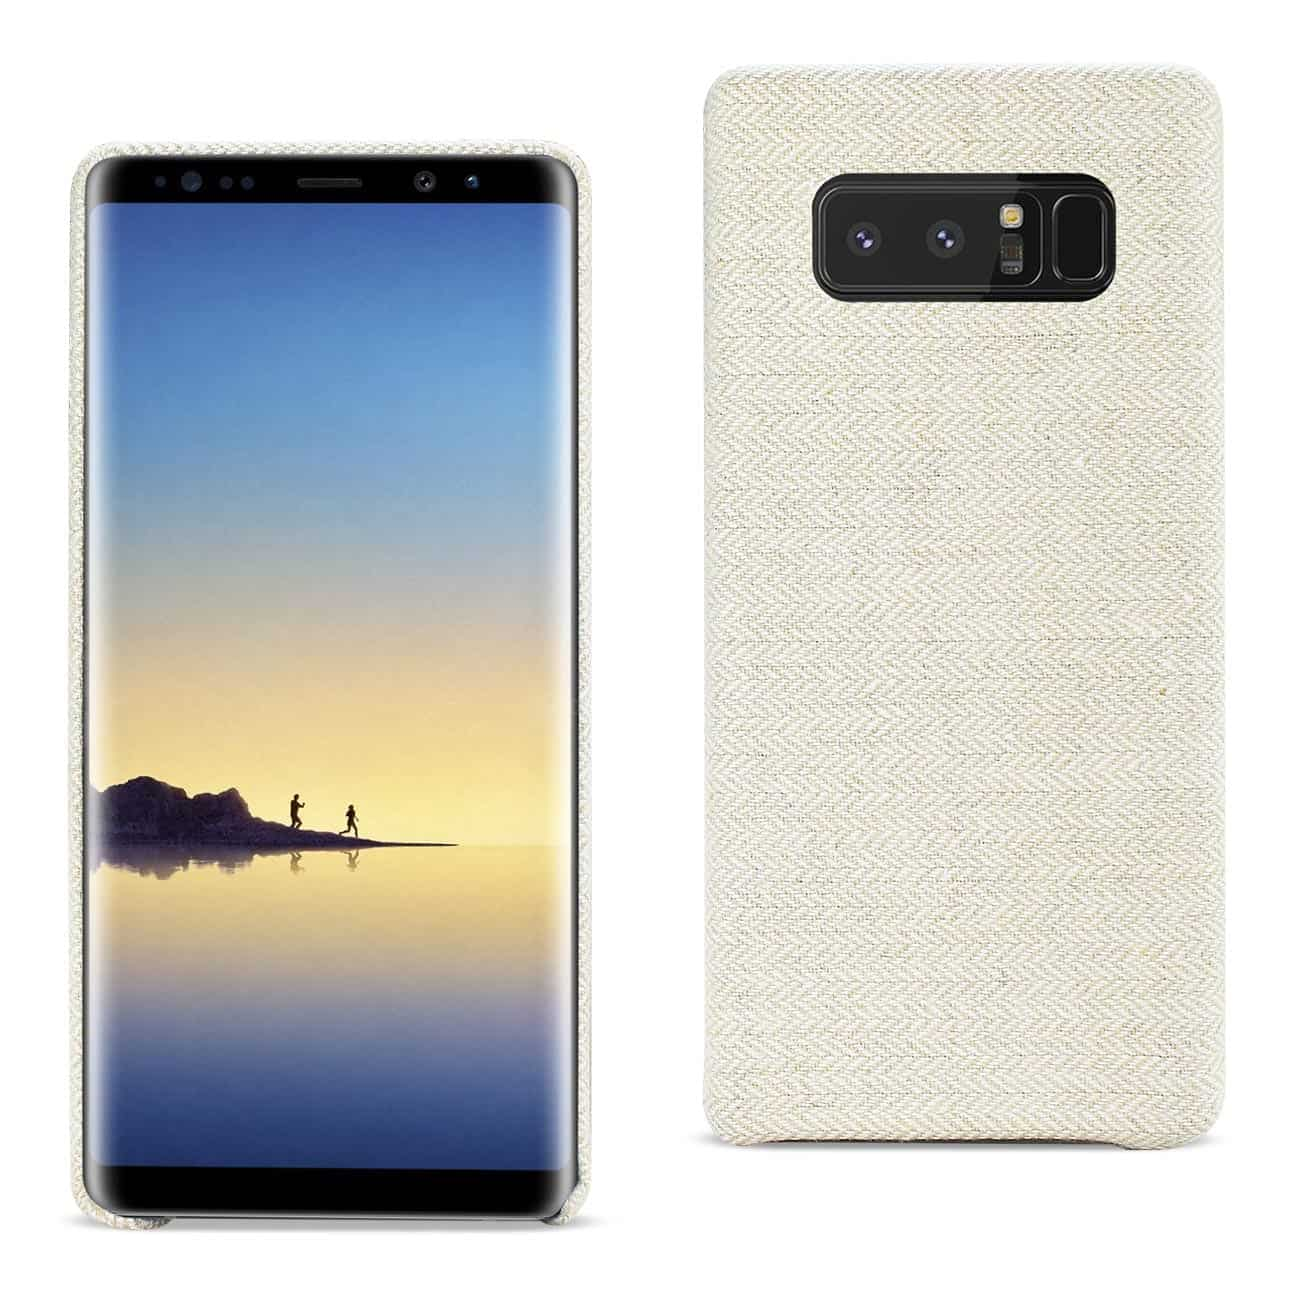 SAMSUNG GALAXY NOTE 8 HERRINGBONE FABRIC IN BEIGE